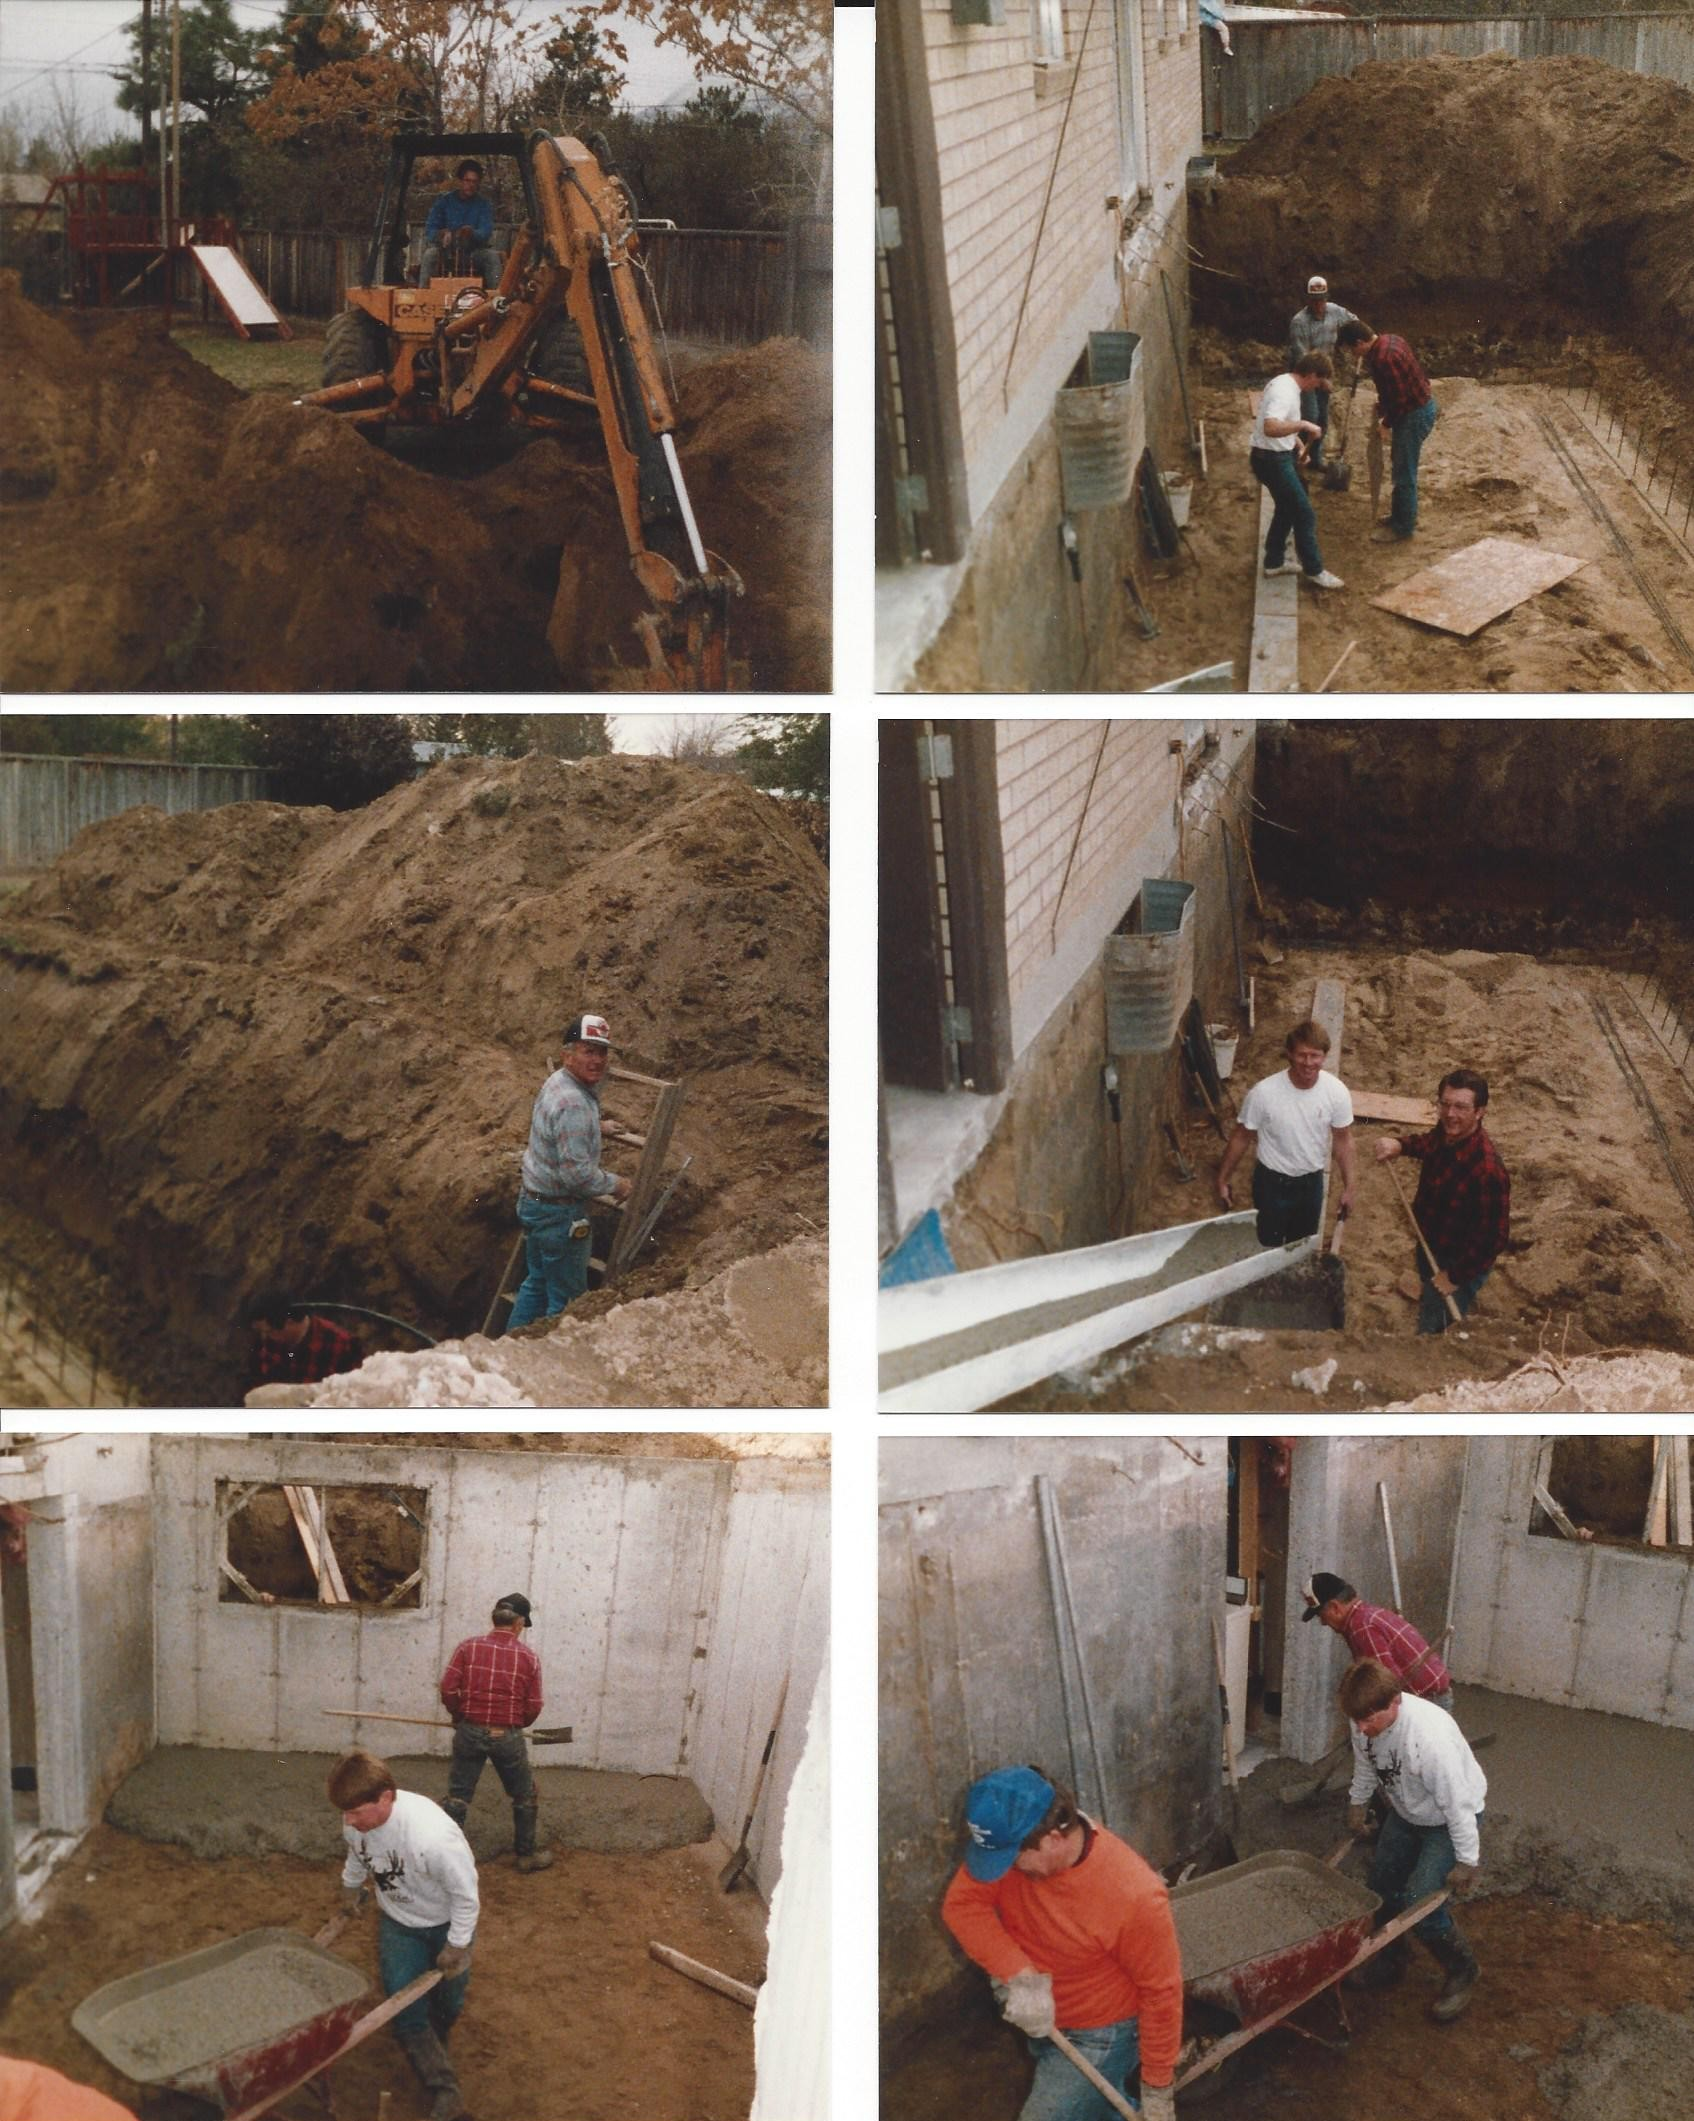 Top: Left - Don breaking ground. Right - Steve, Mick, Dad preparing for footings. Middle: Left- Dad. Right - Steve and Mick pouring the footings. Bottom: Left - Steve and Dad. Right - Mick, Steve and Dad pouring the cement floor.